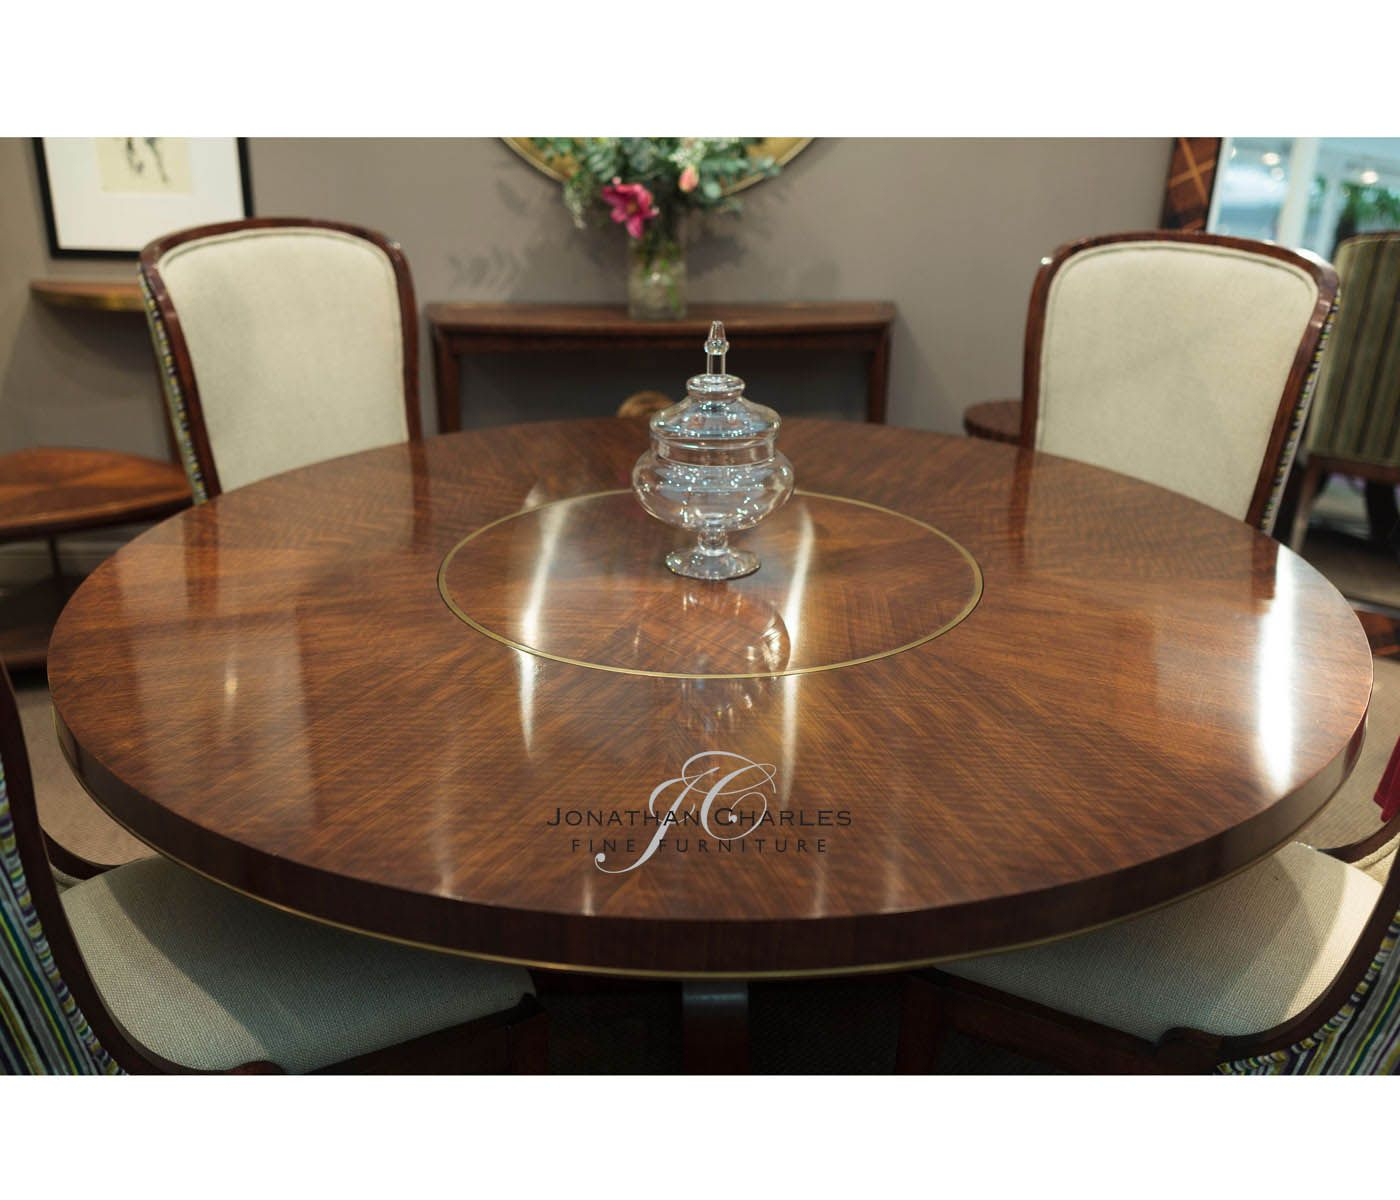 Incroyable Hyedua Circular Dining Table By Jonathan Charles Fine Furniture